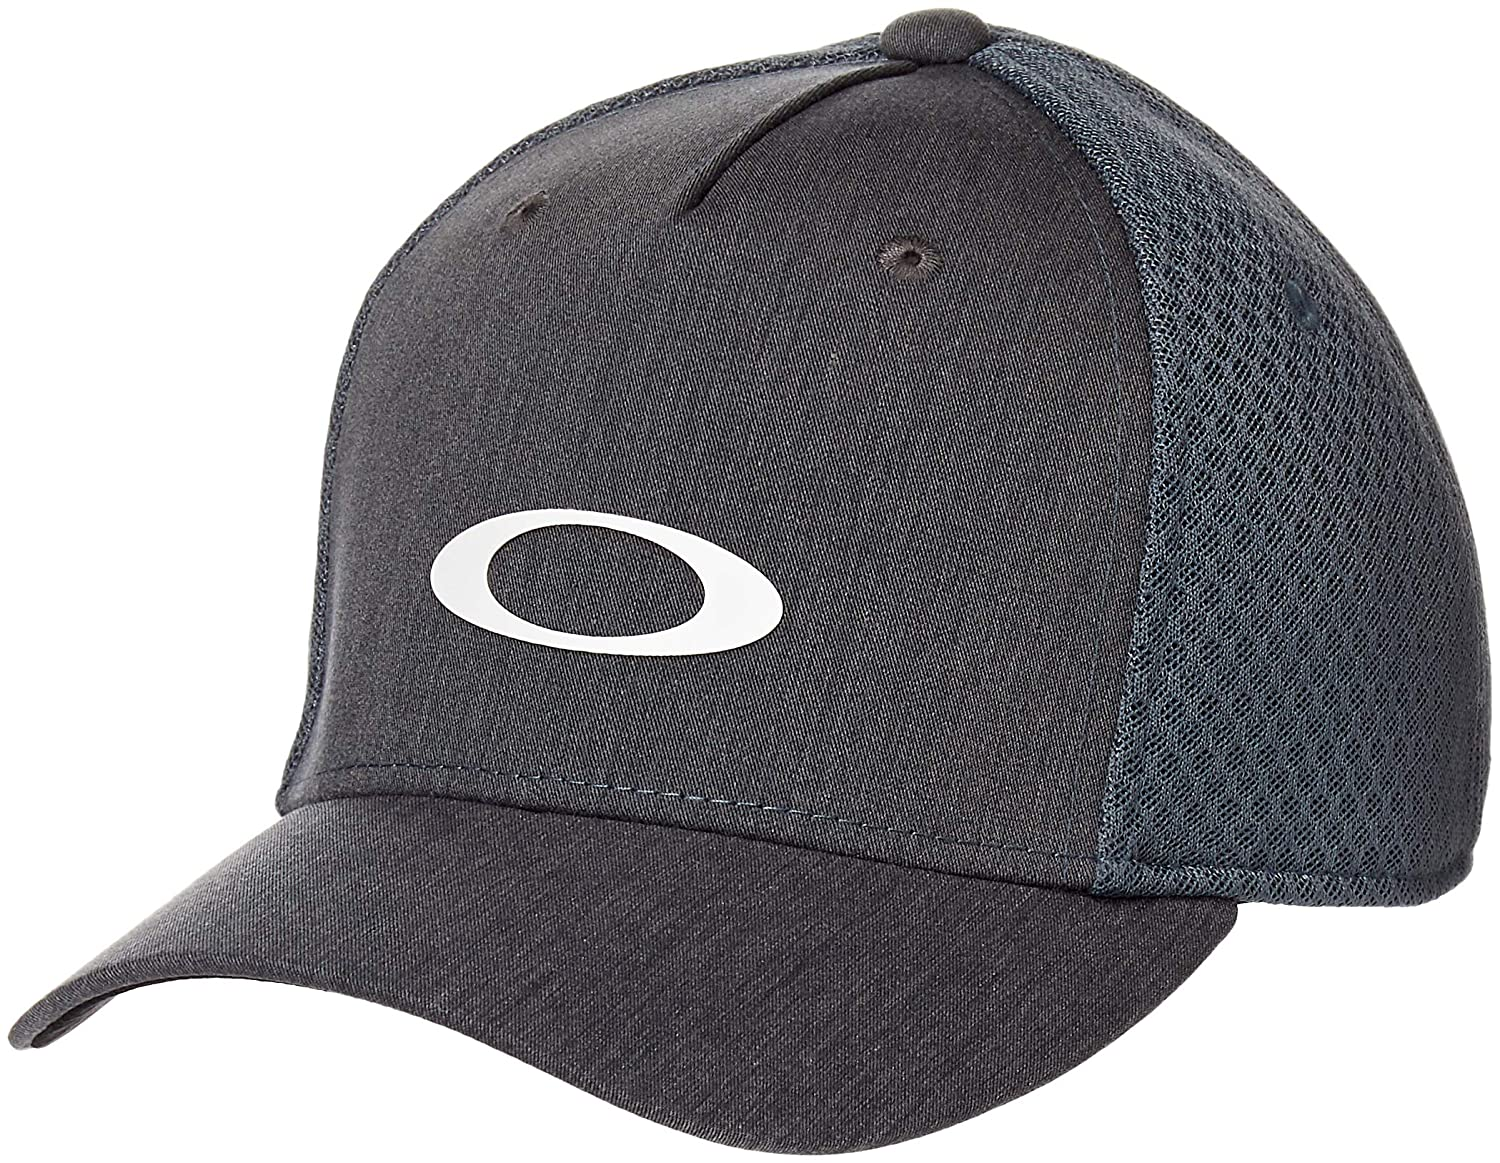 Oakley Gorras Game Cap Grey Adjustable: Amazon.es: Ropa y accesorios